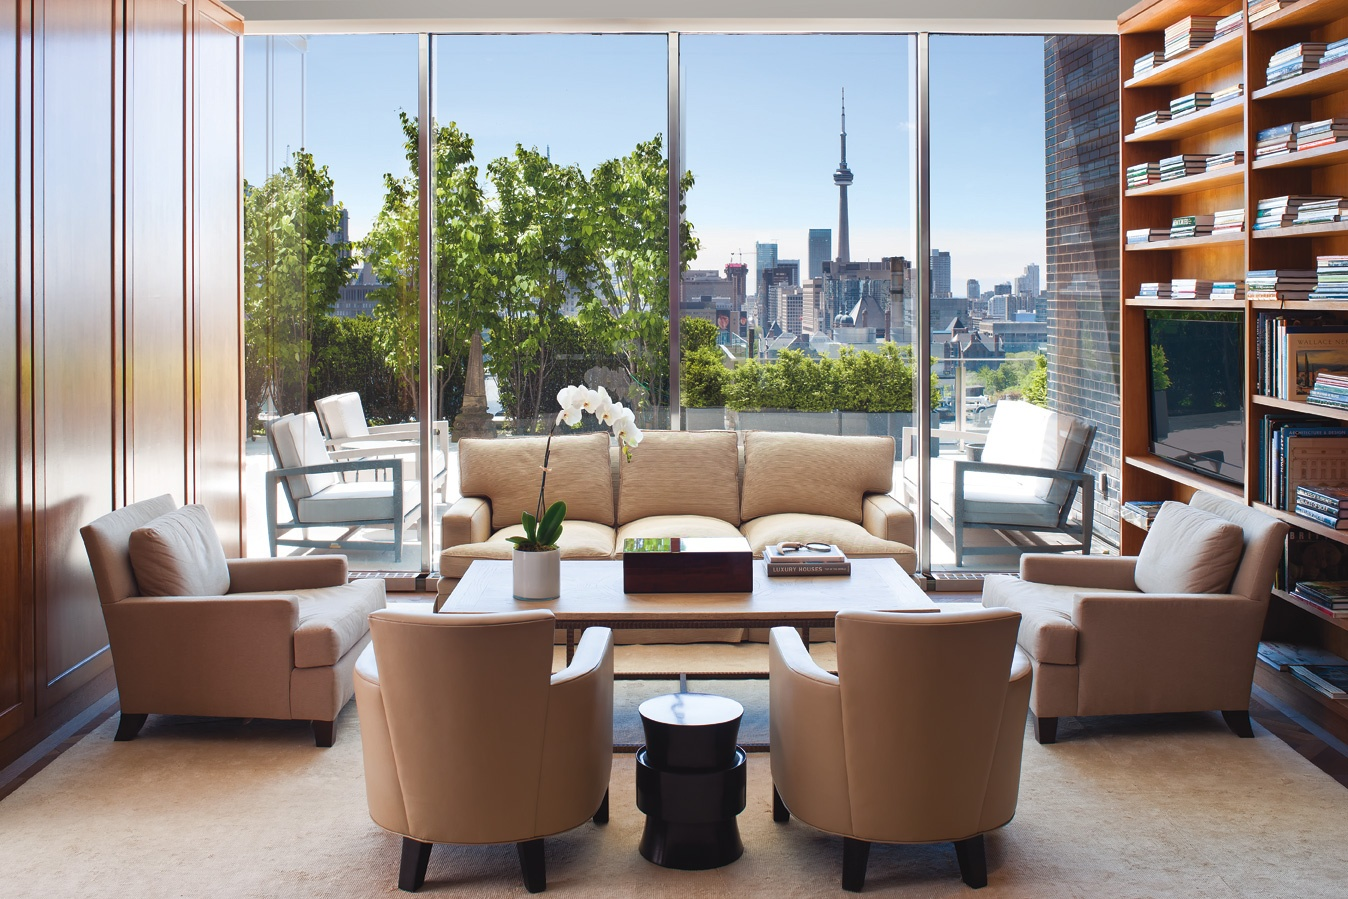 This Philip Johnson-designed condominium in Yorkville is at eye level with Toronto's CN Tower.